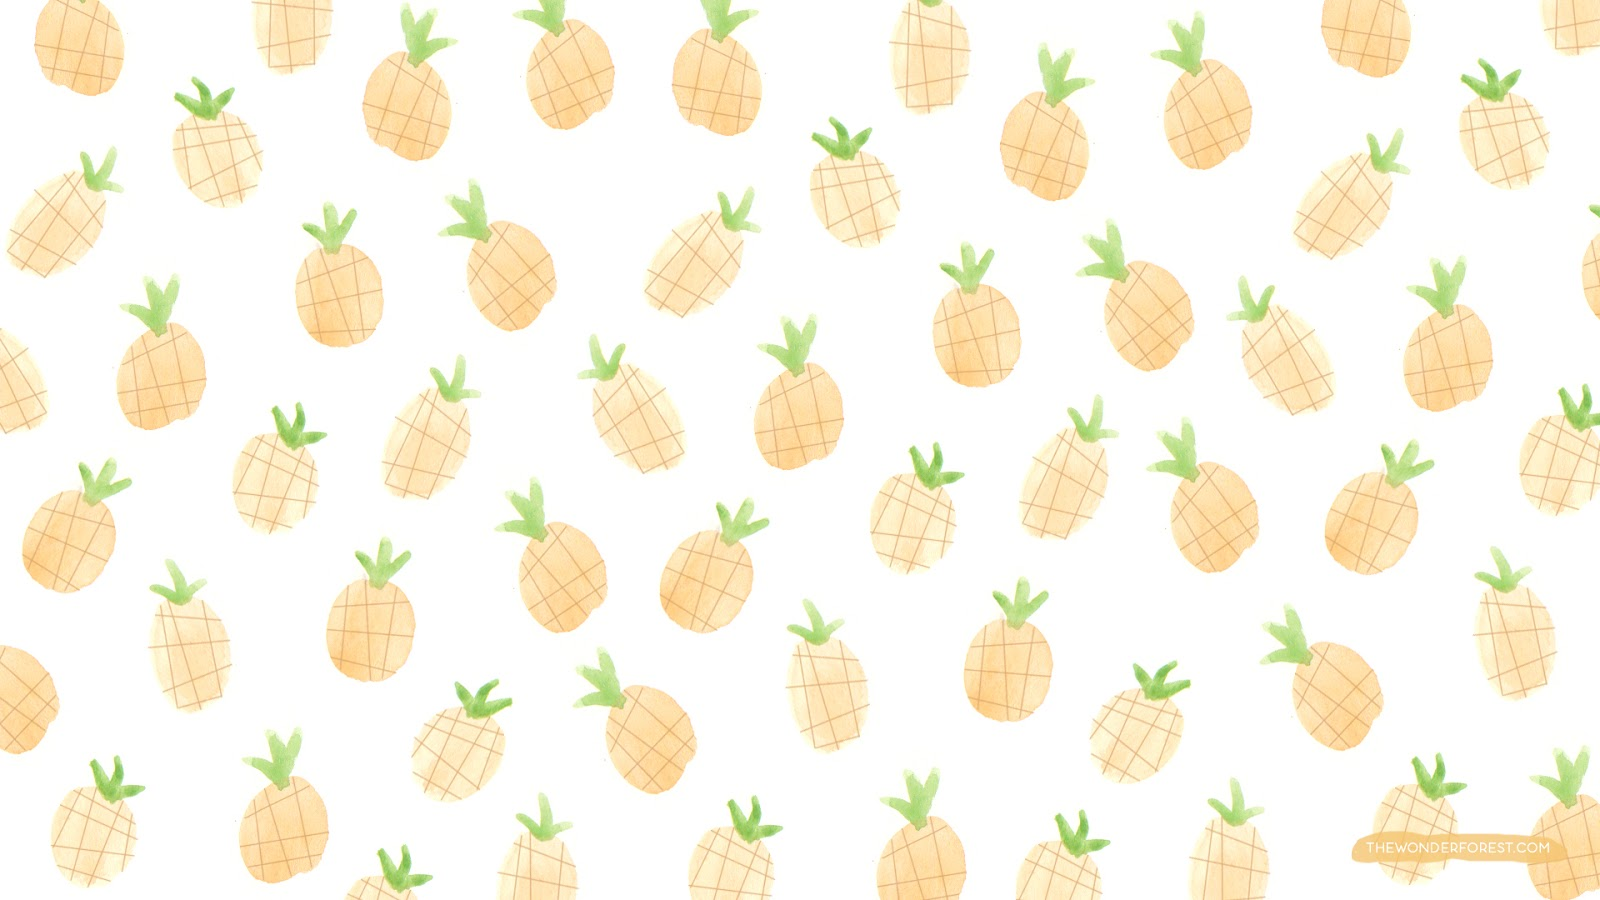 Fruity iPhone and Desktop Wallpapers - Wonder Forest